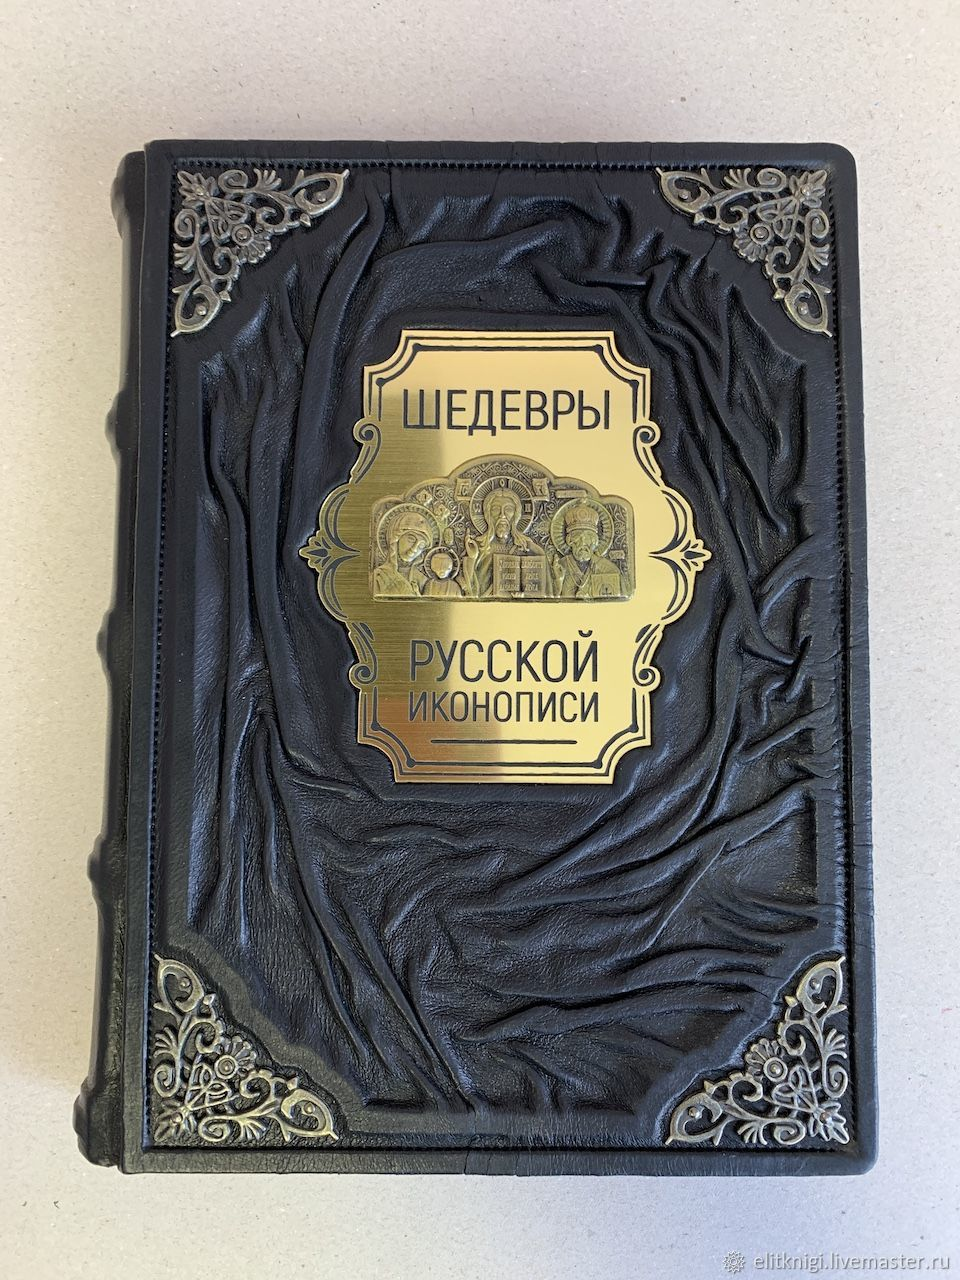 Masterpieces of Russian icon painting (gift leather book), Gift books, Moscow,  Фото №1